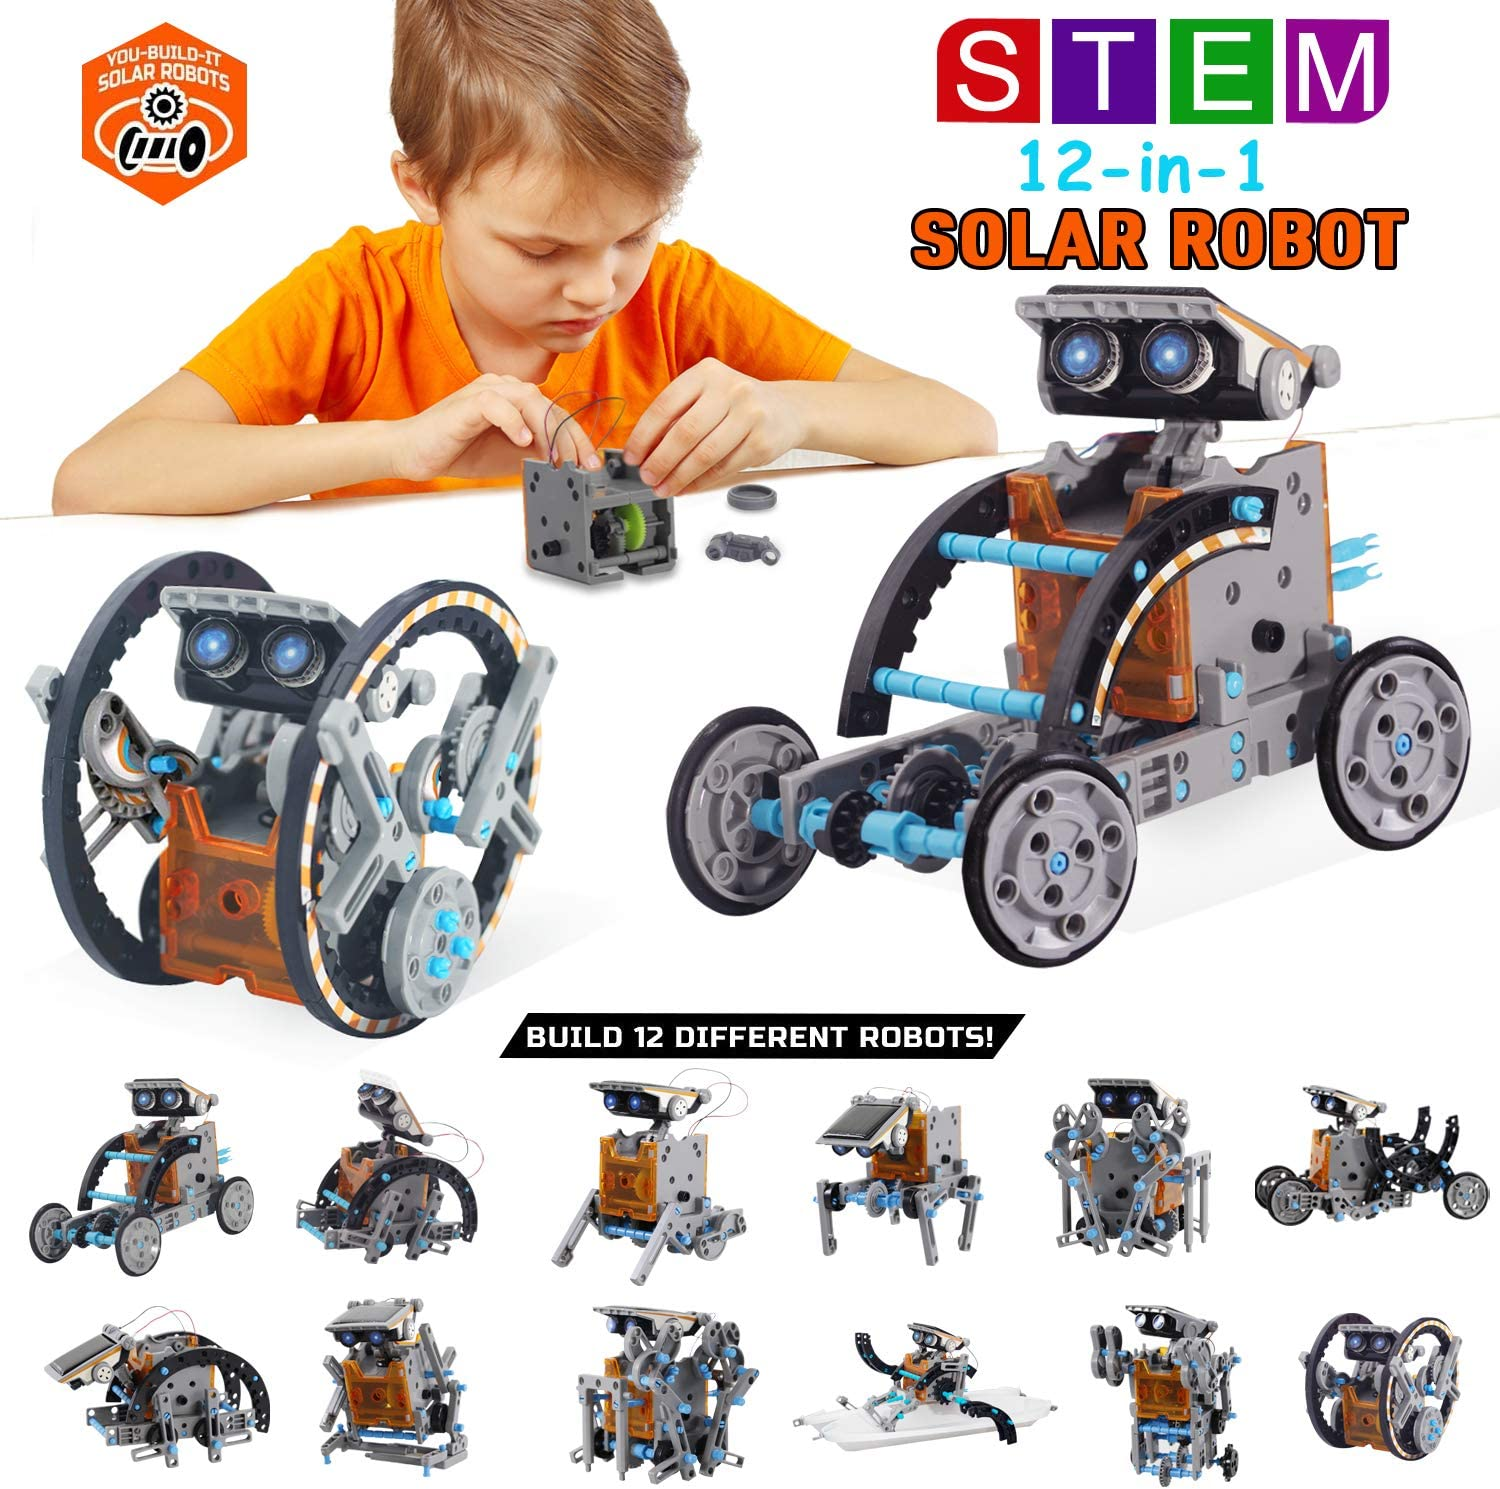 Free Amazon Promo Code 2020 for 12-in-1 STEM Education DIY Solar Robot Toys